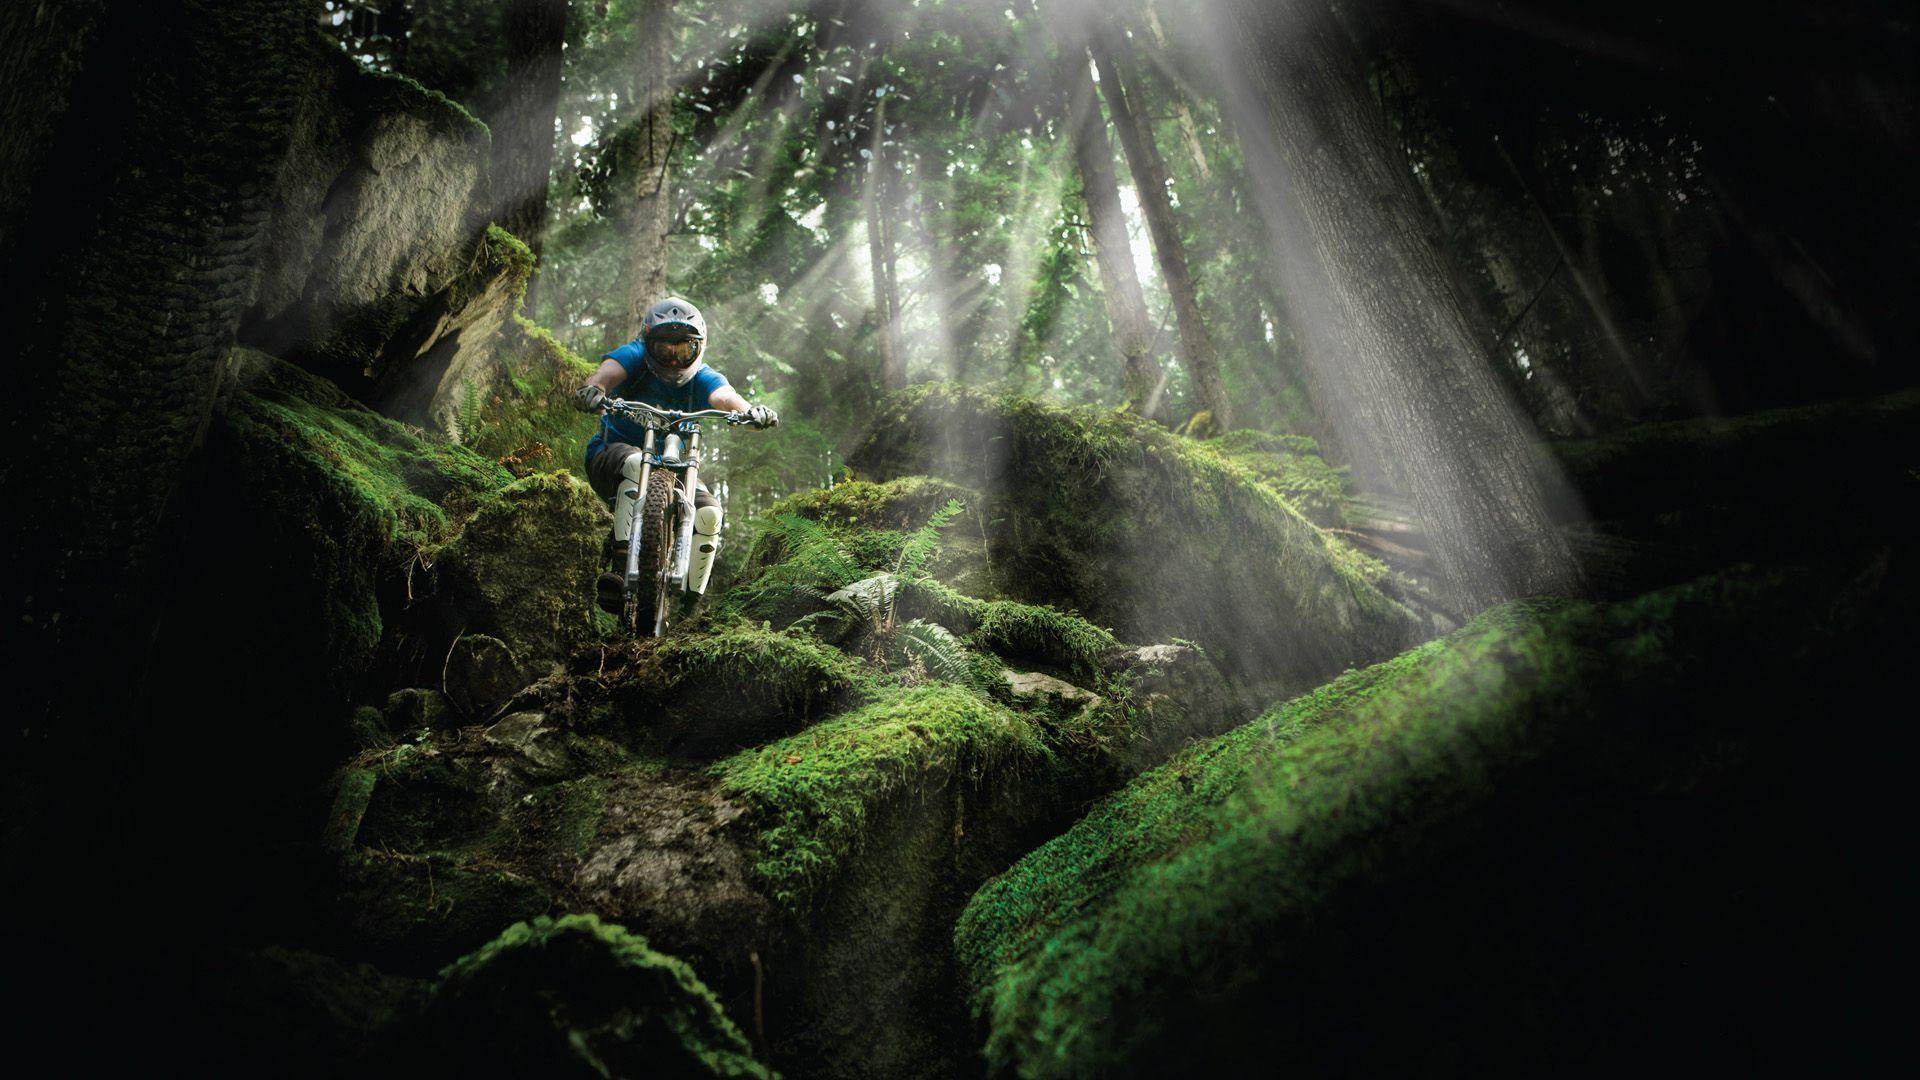 Free Download Downhill Mountain Bike Wallpapers 1920x1080 For Your Desktop Mobile Tablet Explore 73 Downhill Mountain Bike Wallpaper Downhill Mountain Bike Wallpaper Downhill Mountain Biking Wallpaper Mountain Bike Wallpaper